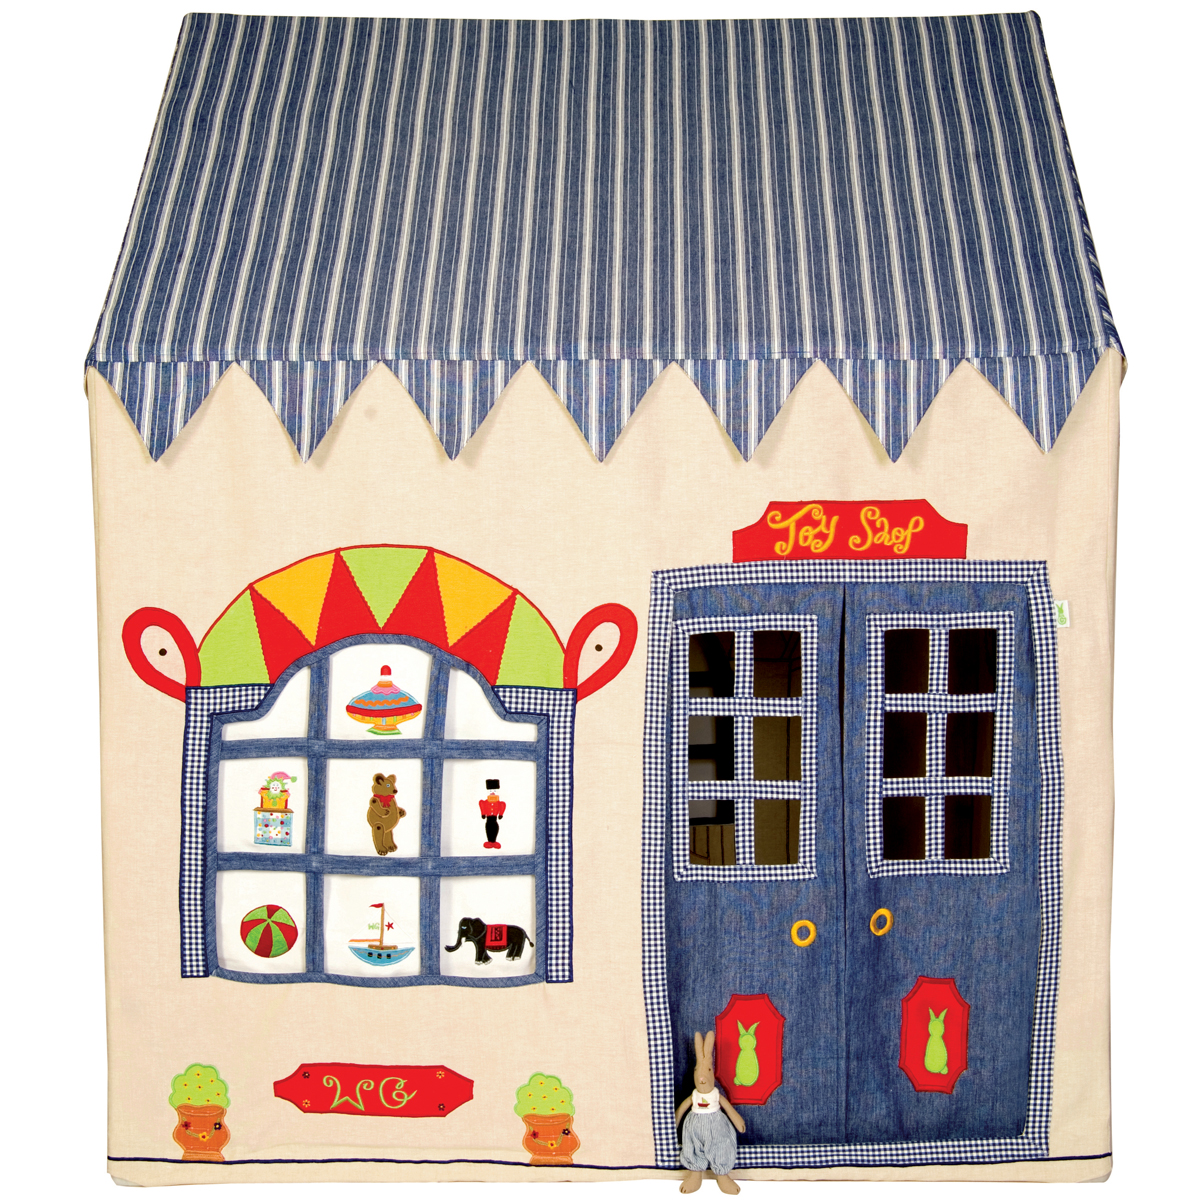 Appliqued Playhouse, Toy Shop Thumbnail 3